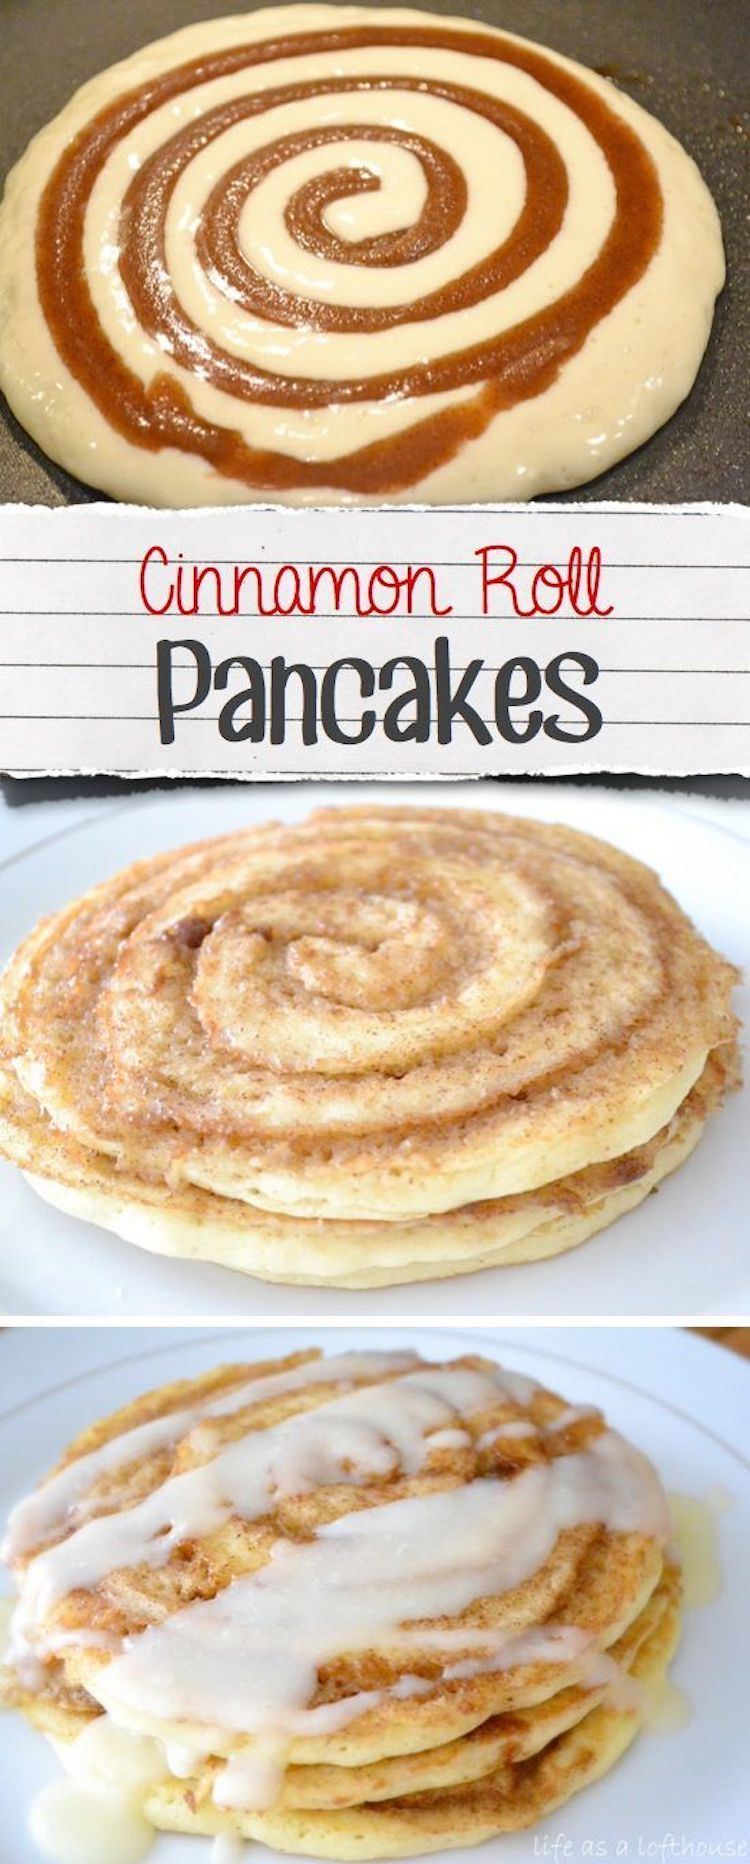 Cinnamon Roll Pancake Recipe: These Cinnamon Roll Pancakes will be the star of the show at breakfast time! Swirls of cinnamon throughout and topped with cream cheese glaze!